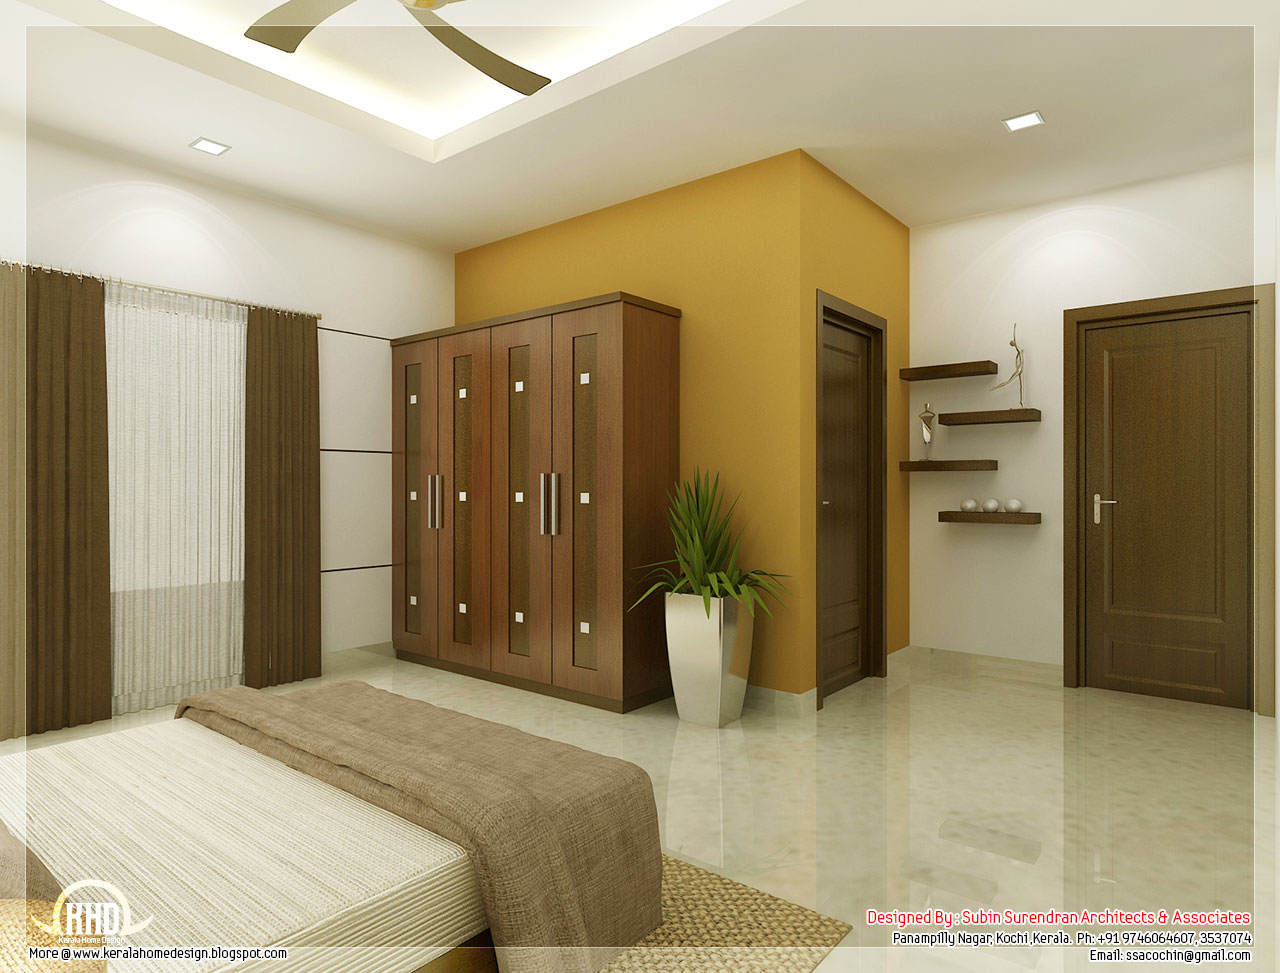 Beautiful bedroom interior designs kerala home design for Simple home interior design images